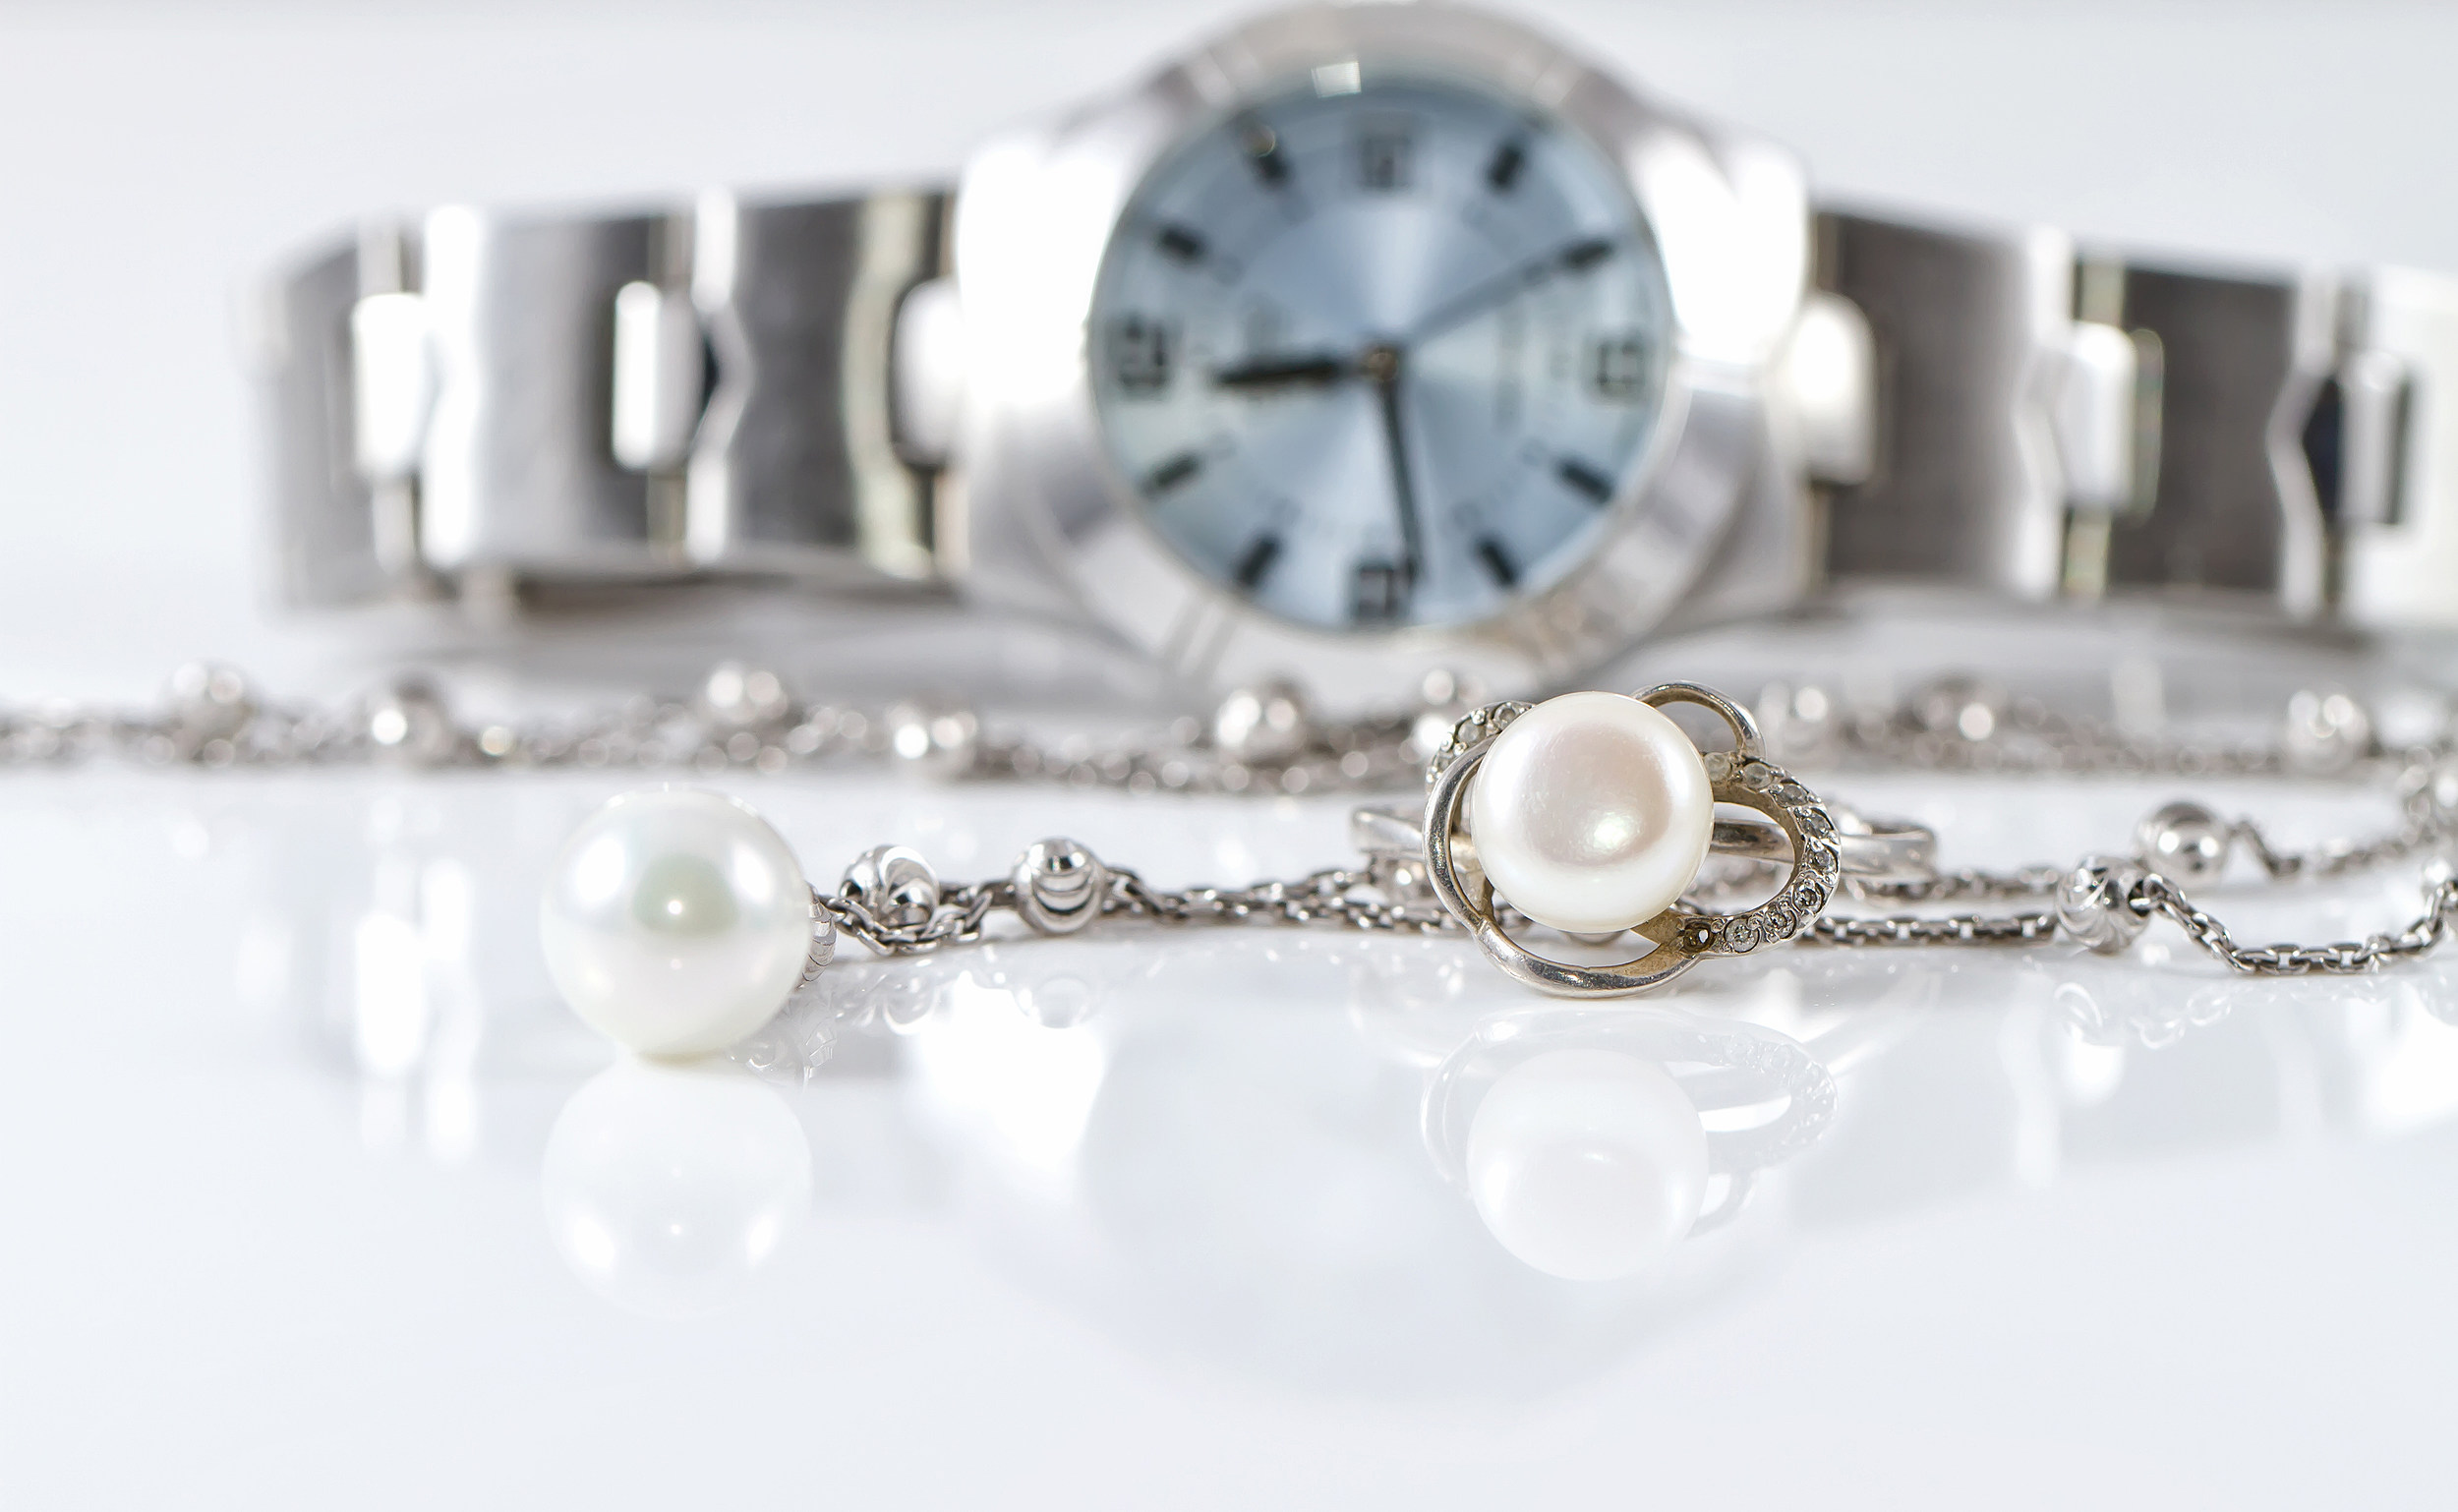 Silver ring and chain on the background of watches